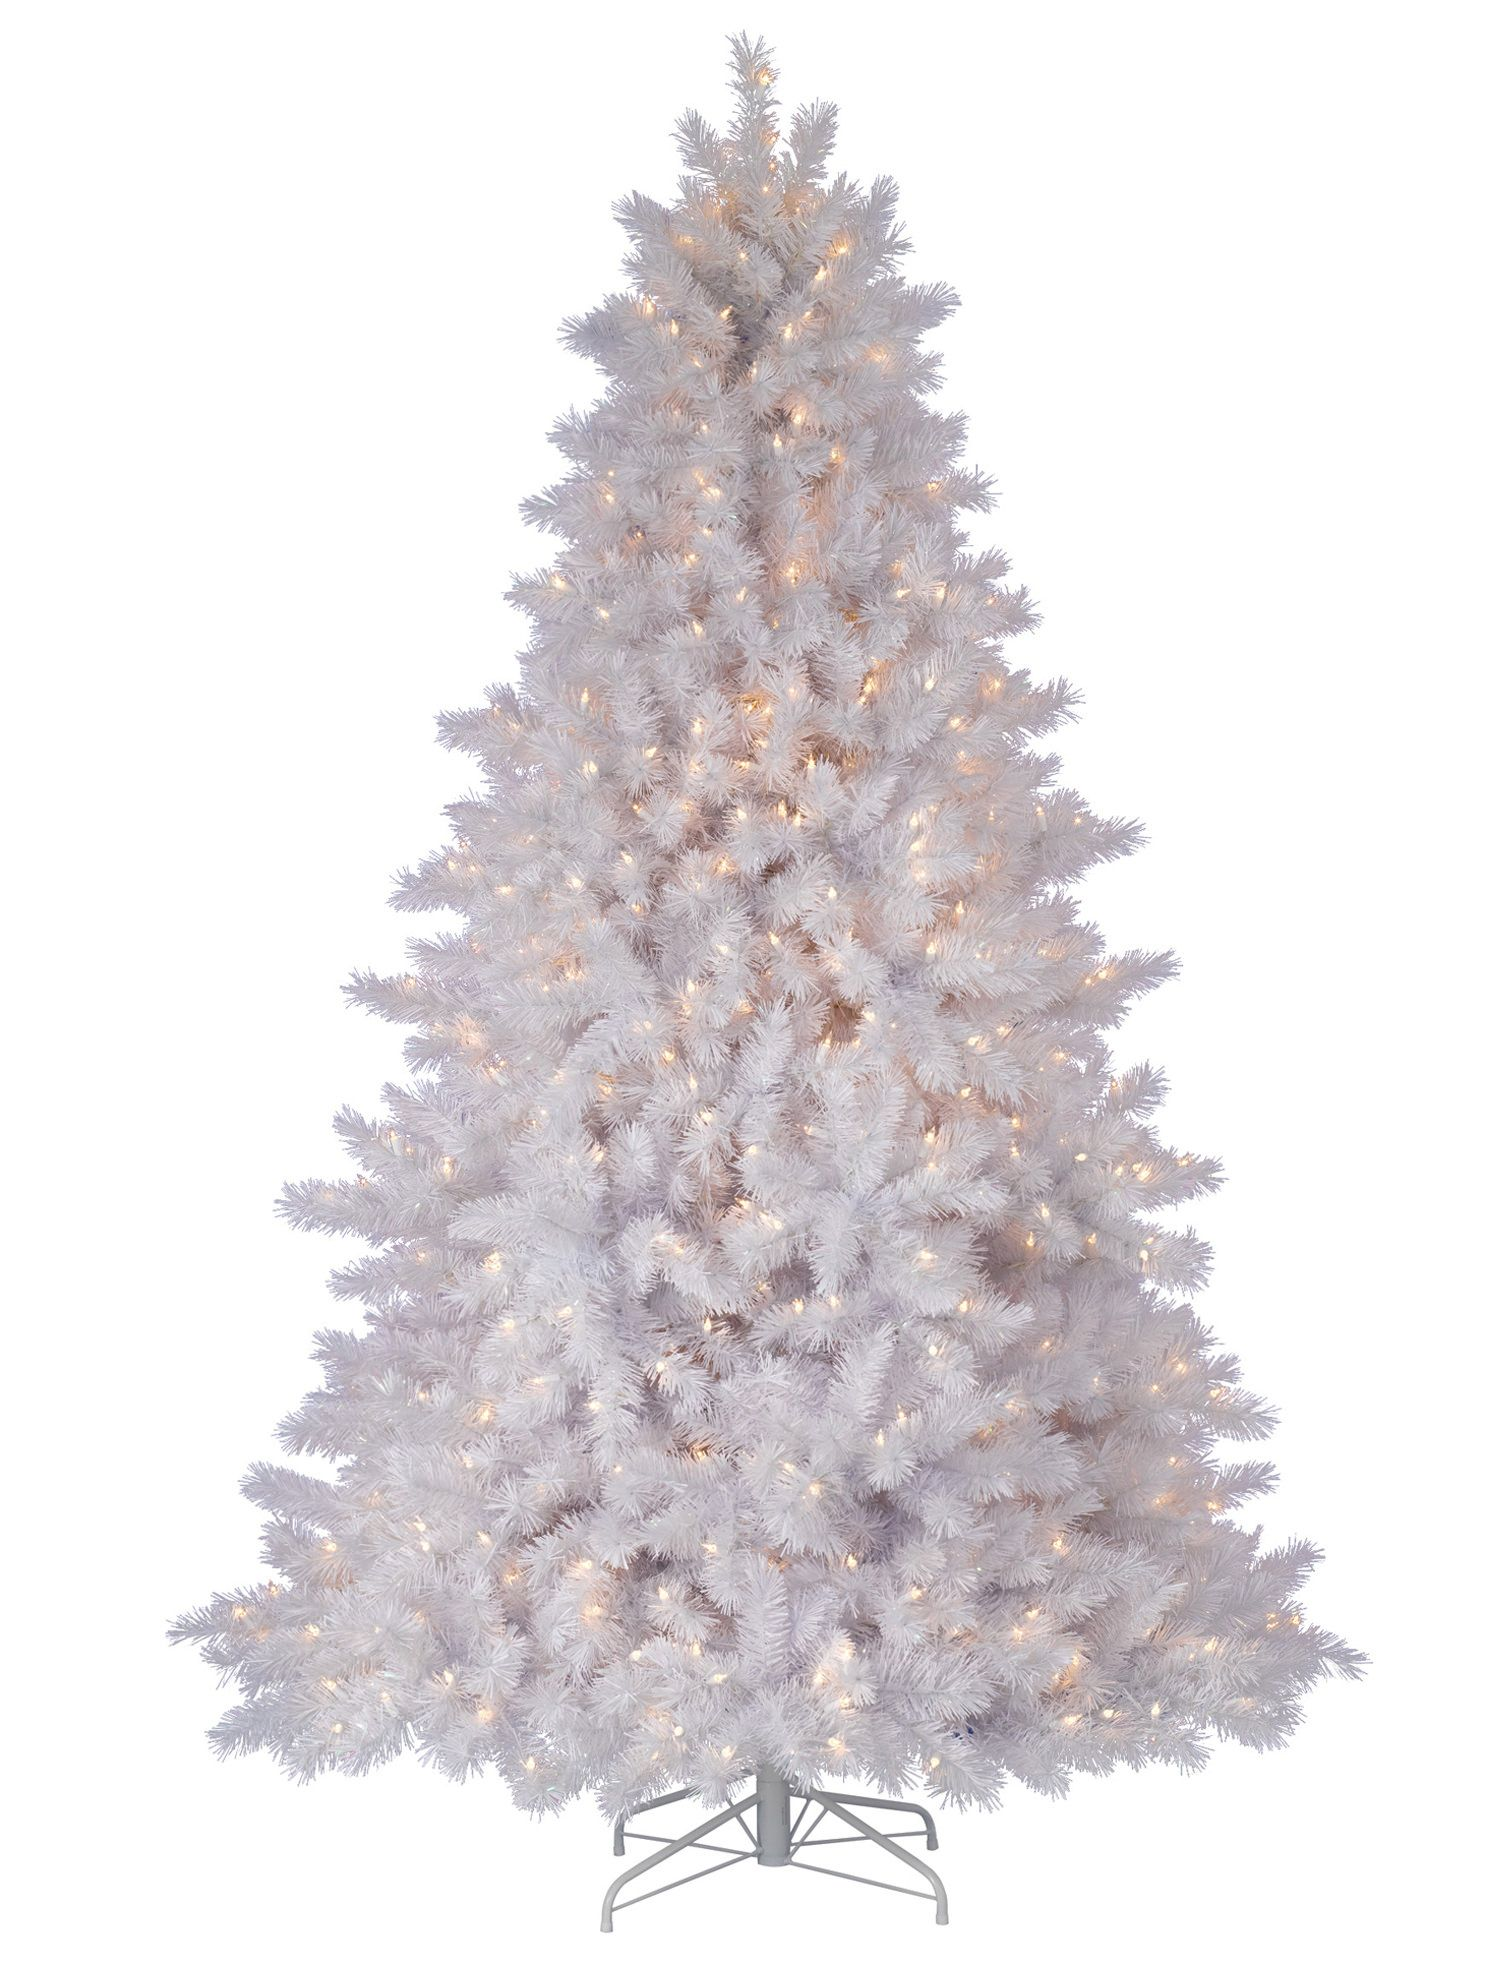 Classic White Artificial Christmas Tree | Balsam Hill ...